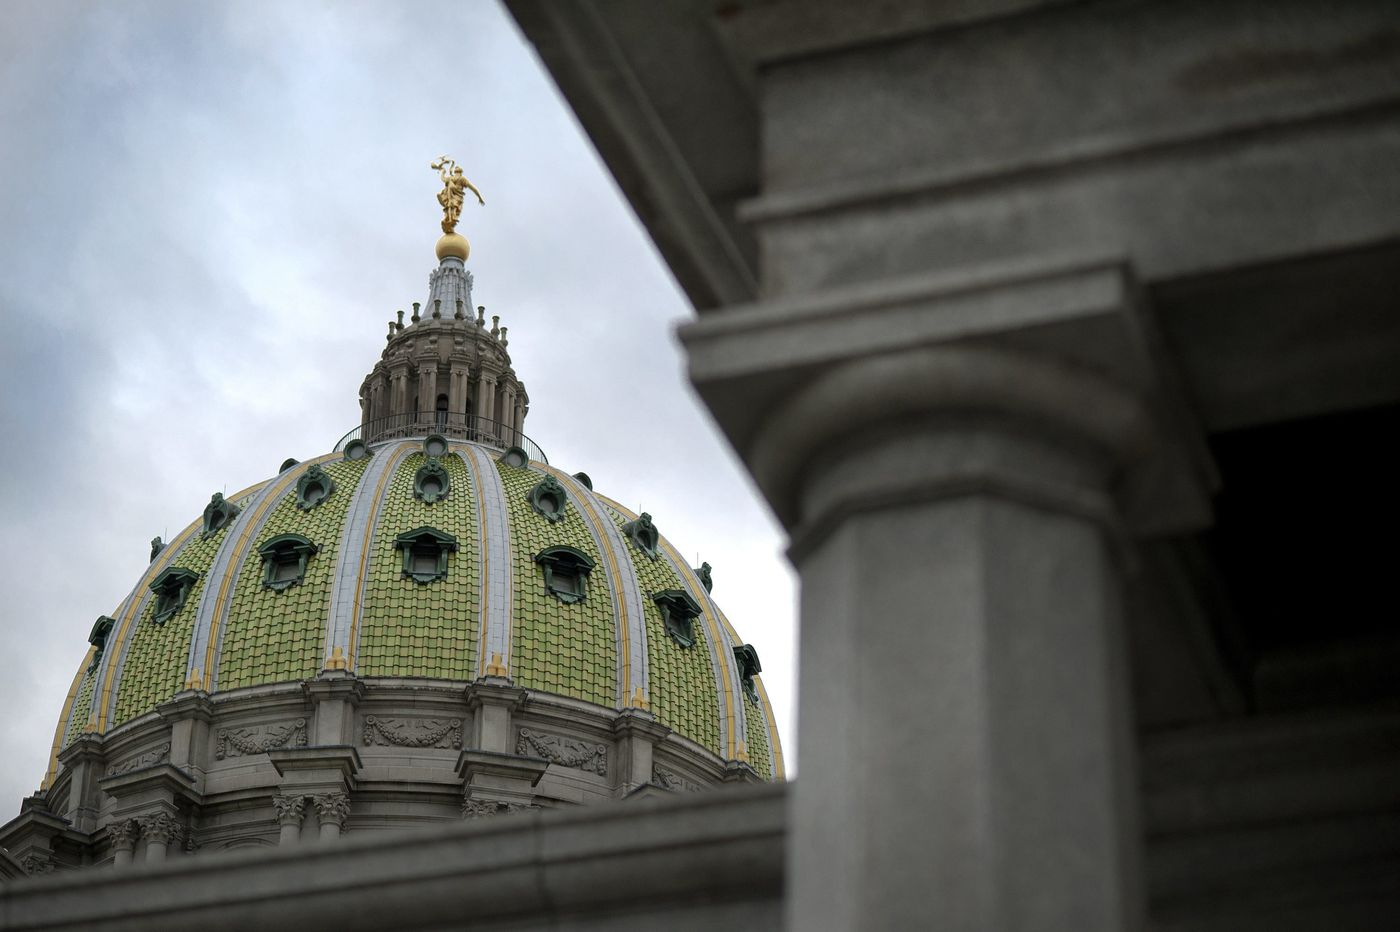 Pa. House advances bill ordering gun surrender in more domestic violence cases